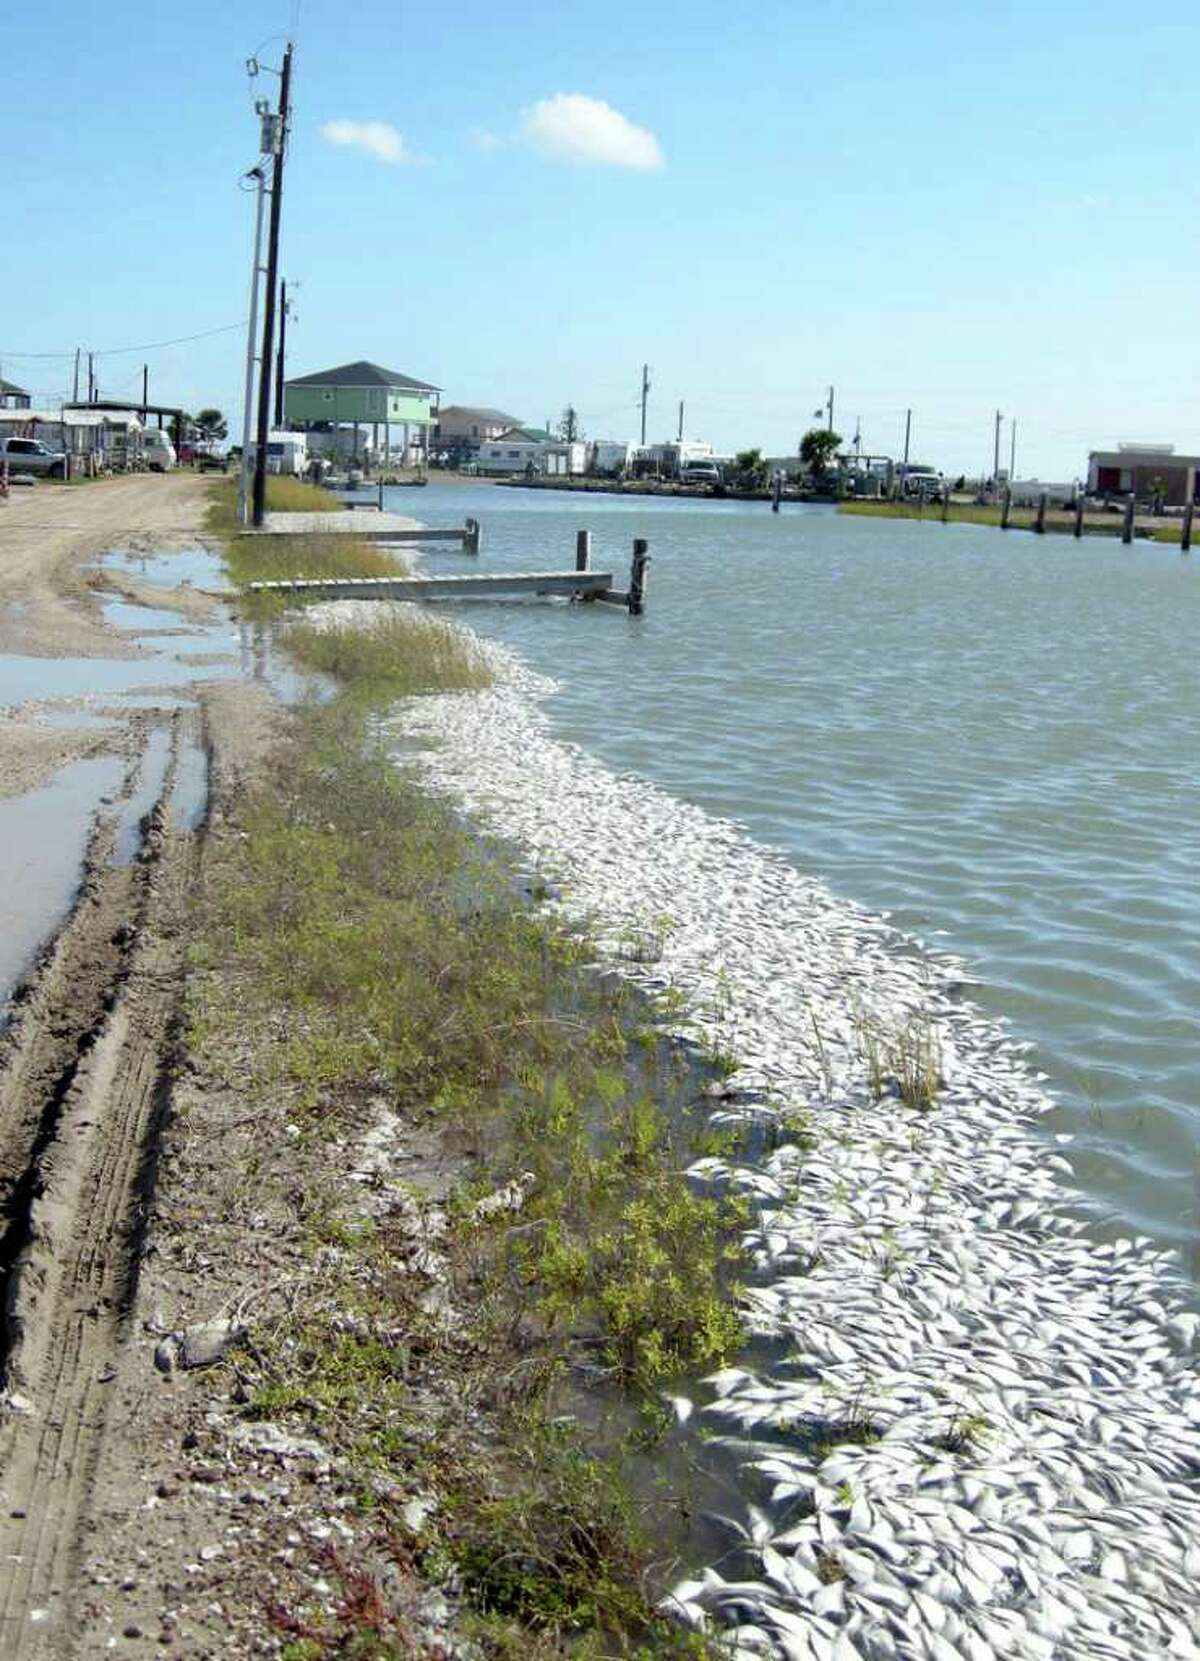 Gulf menhaden line the water along Indianola Fishing Marina. The Texas coast is experiencing the largest red tide bloom in a decade, according to Texas Park and Wildlife officials. COURTESY PHOTO